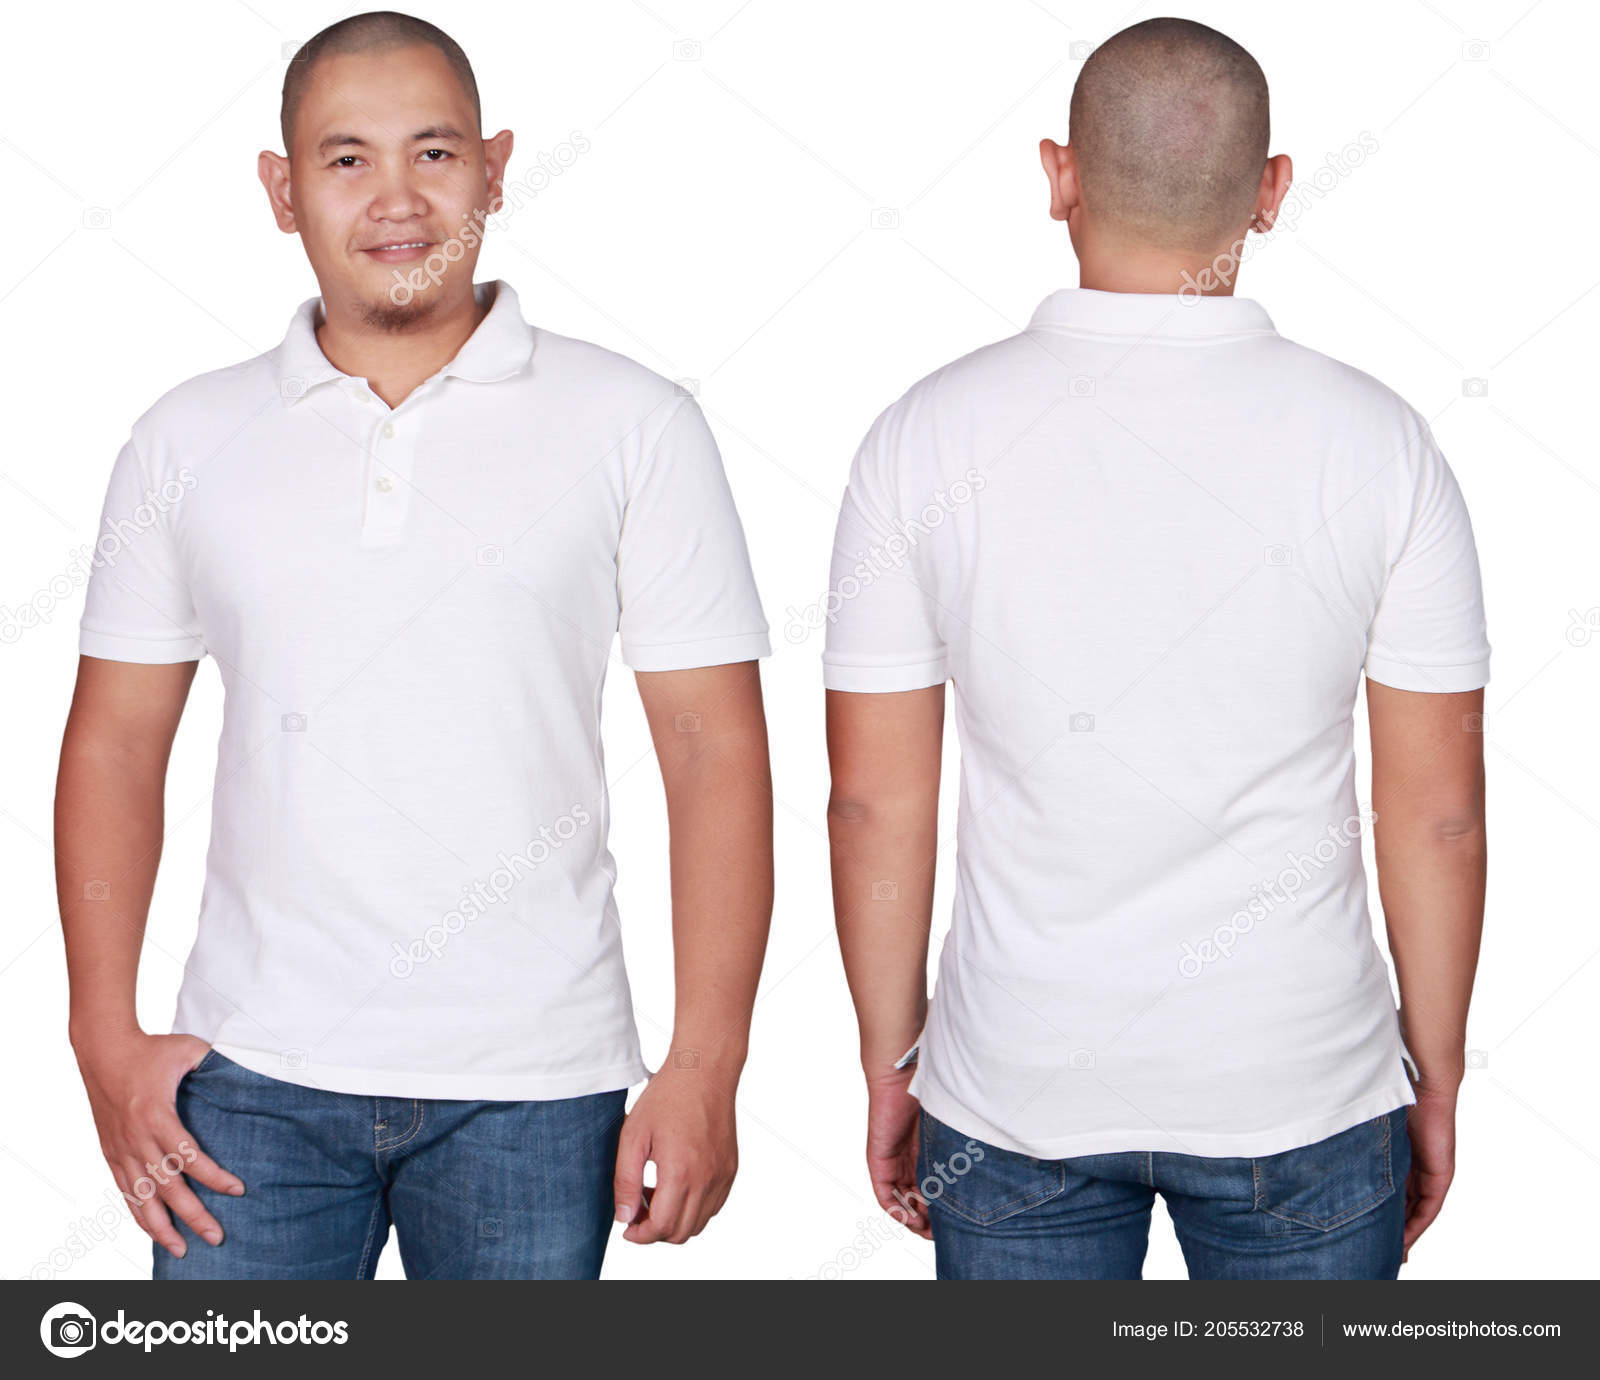 18b31bc6 White polo t-shirt mock up, front and back view, isolated. Male model wear plain  white shirt mockup. Polo shirt design template.